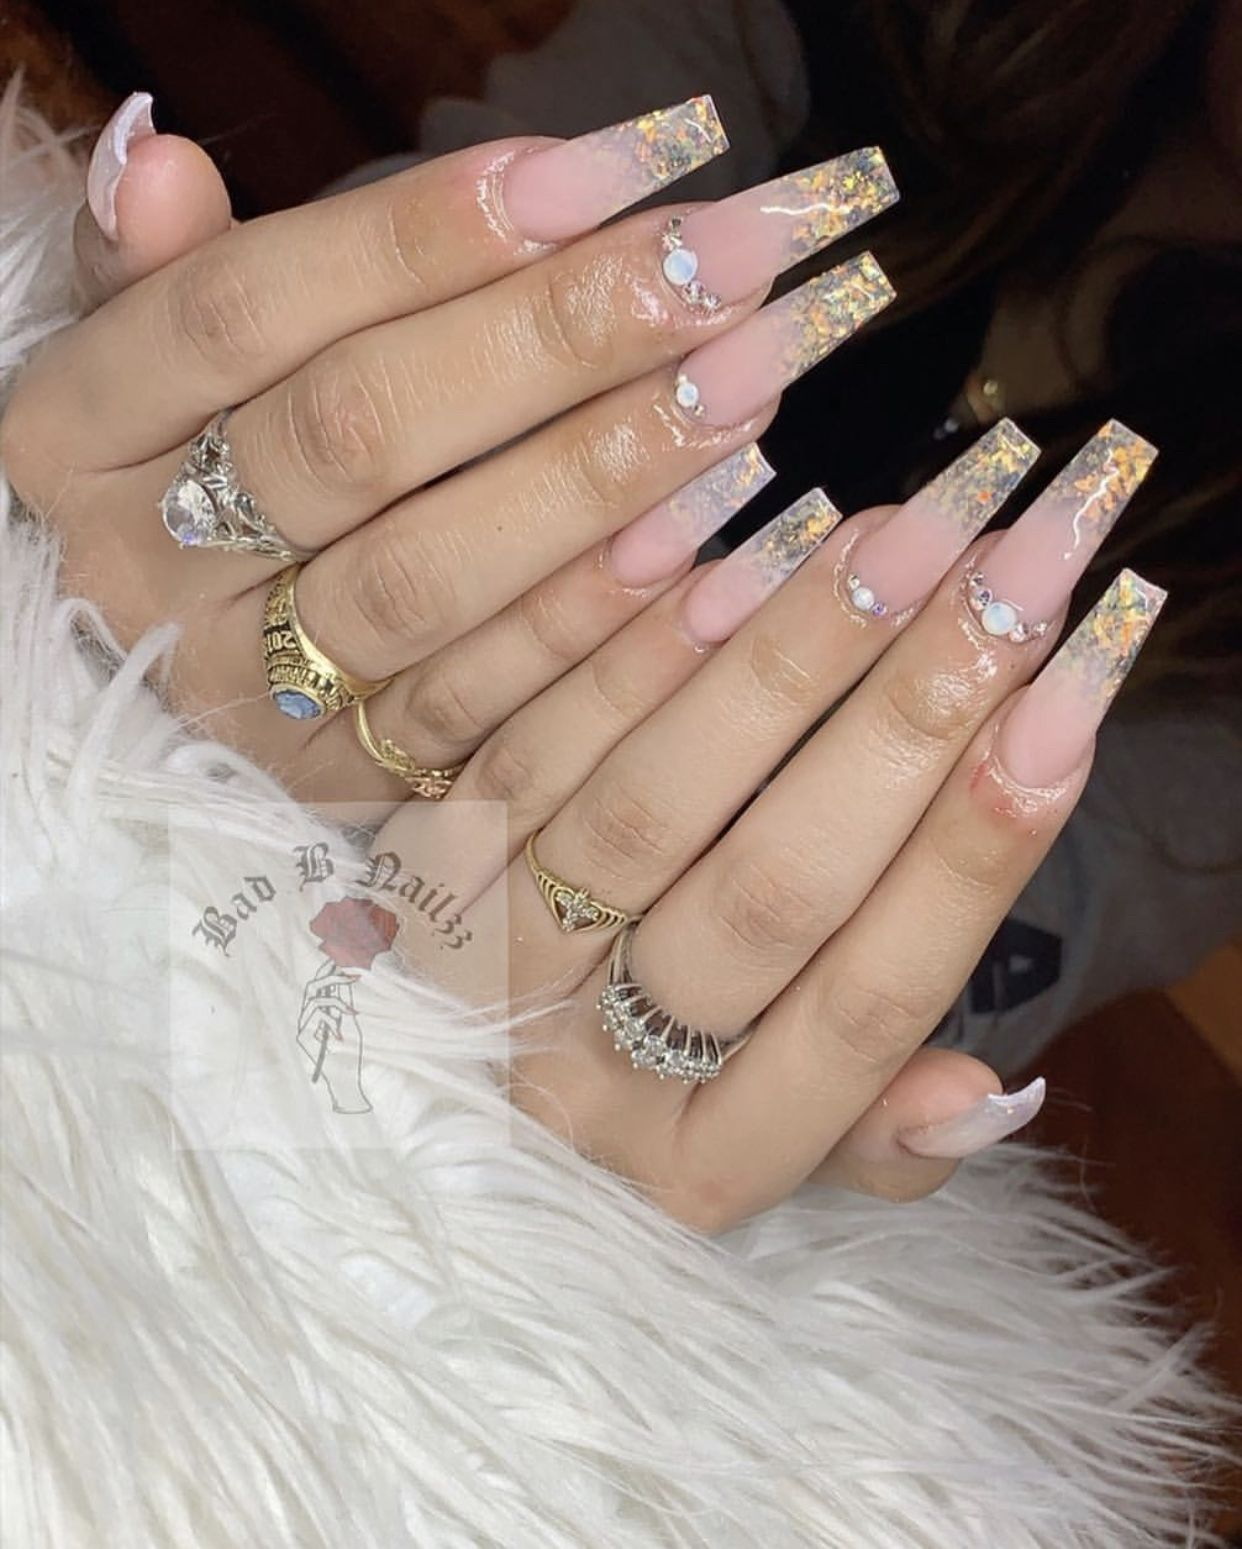 Pin By Biancaaa On Nails Rhinestone Nails Birthday Nails Nails